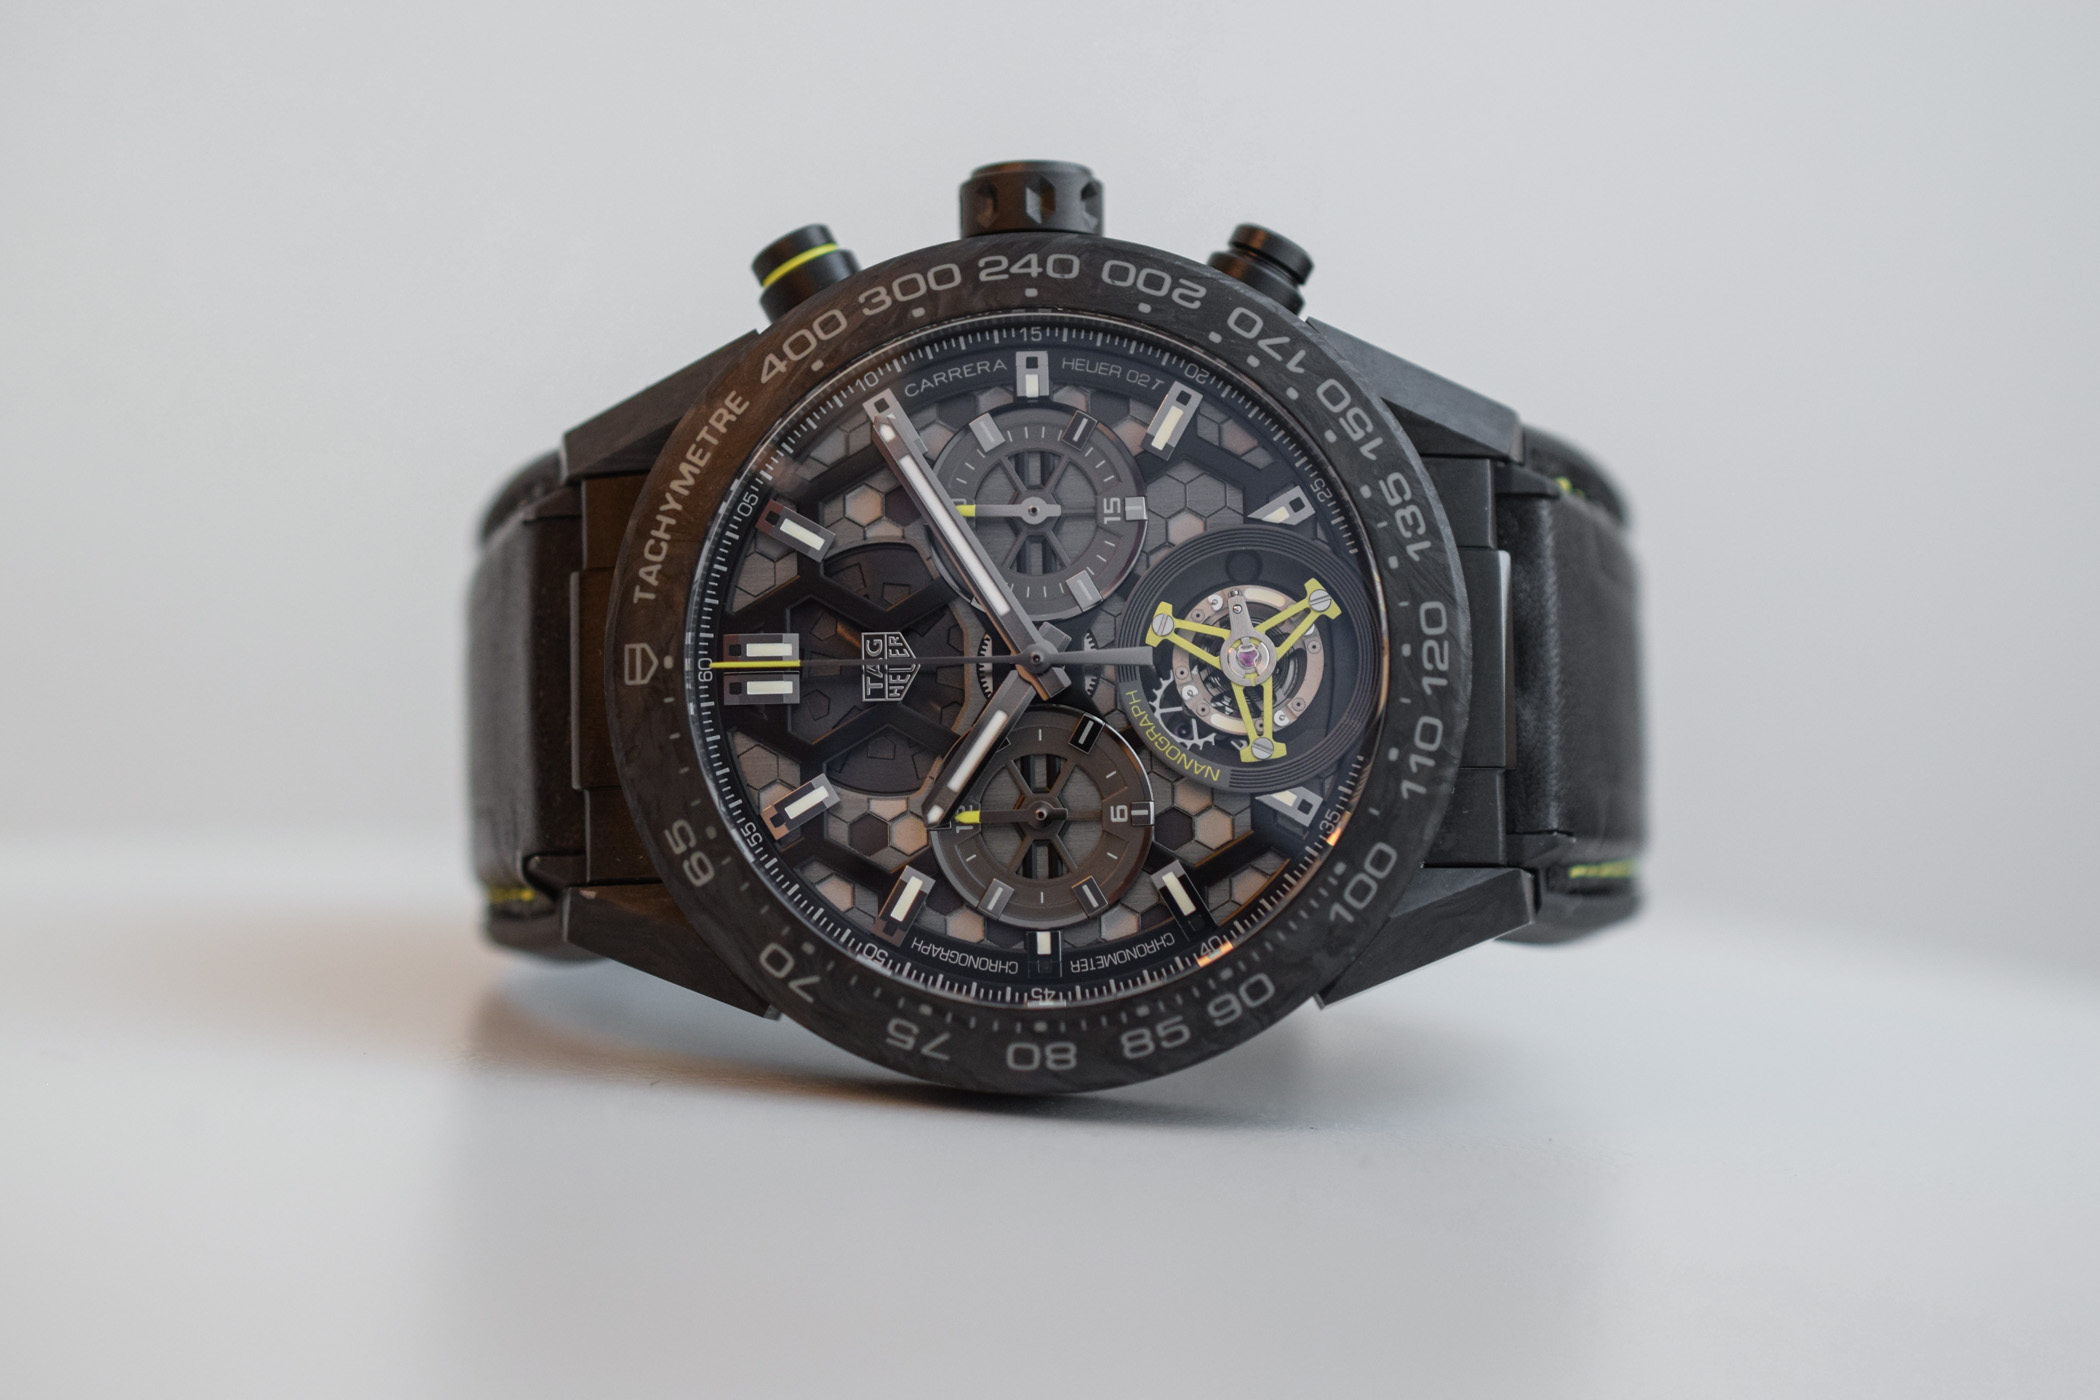 3164d18bc6a Apart from its new hairspring, the tourbillon regulator is identical to the  other Heuer 02T watches, with a 4Hz frequency and a flying architecture.